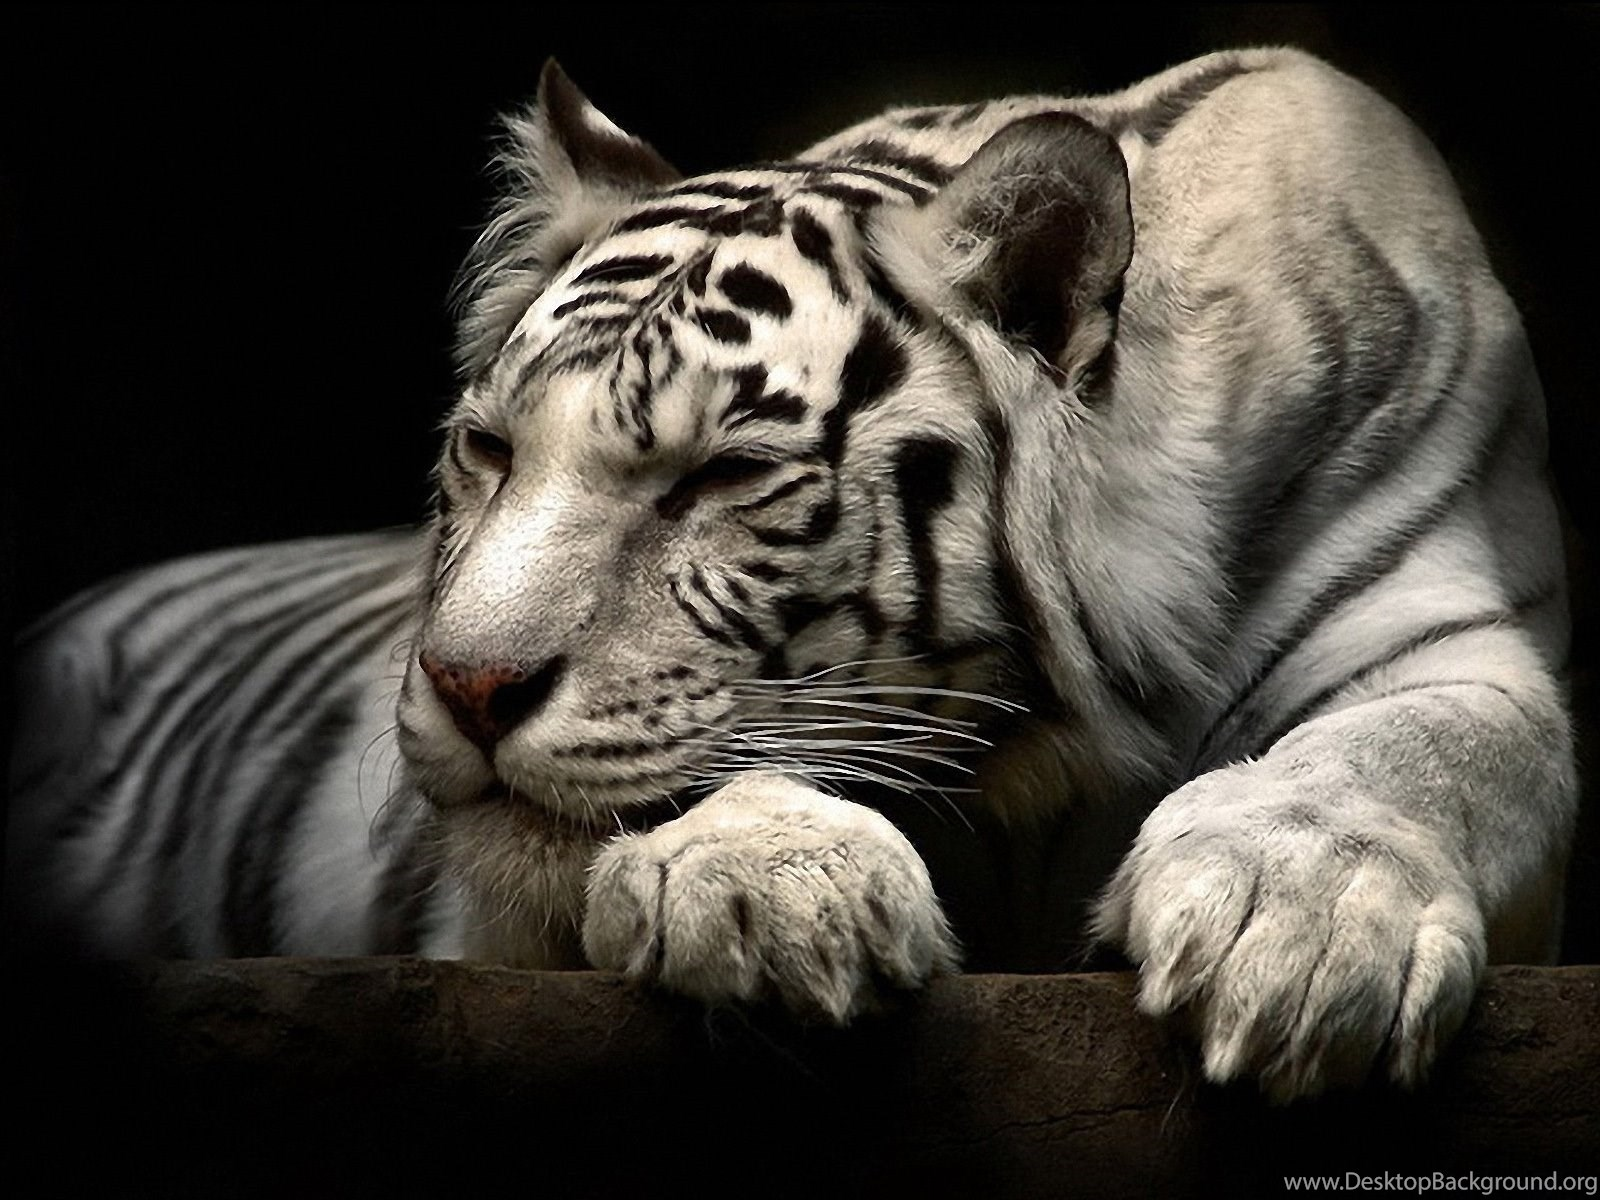 Hd Sleeping White Tiger Wallpapers Full Size Hirewallpapers 6892